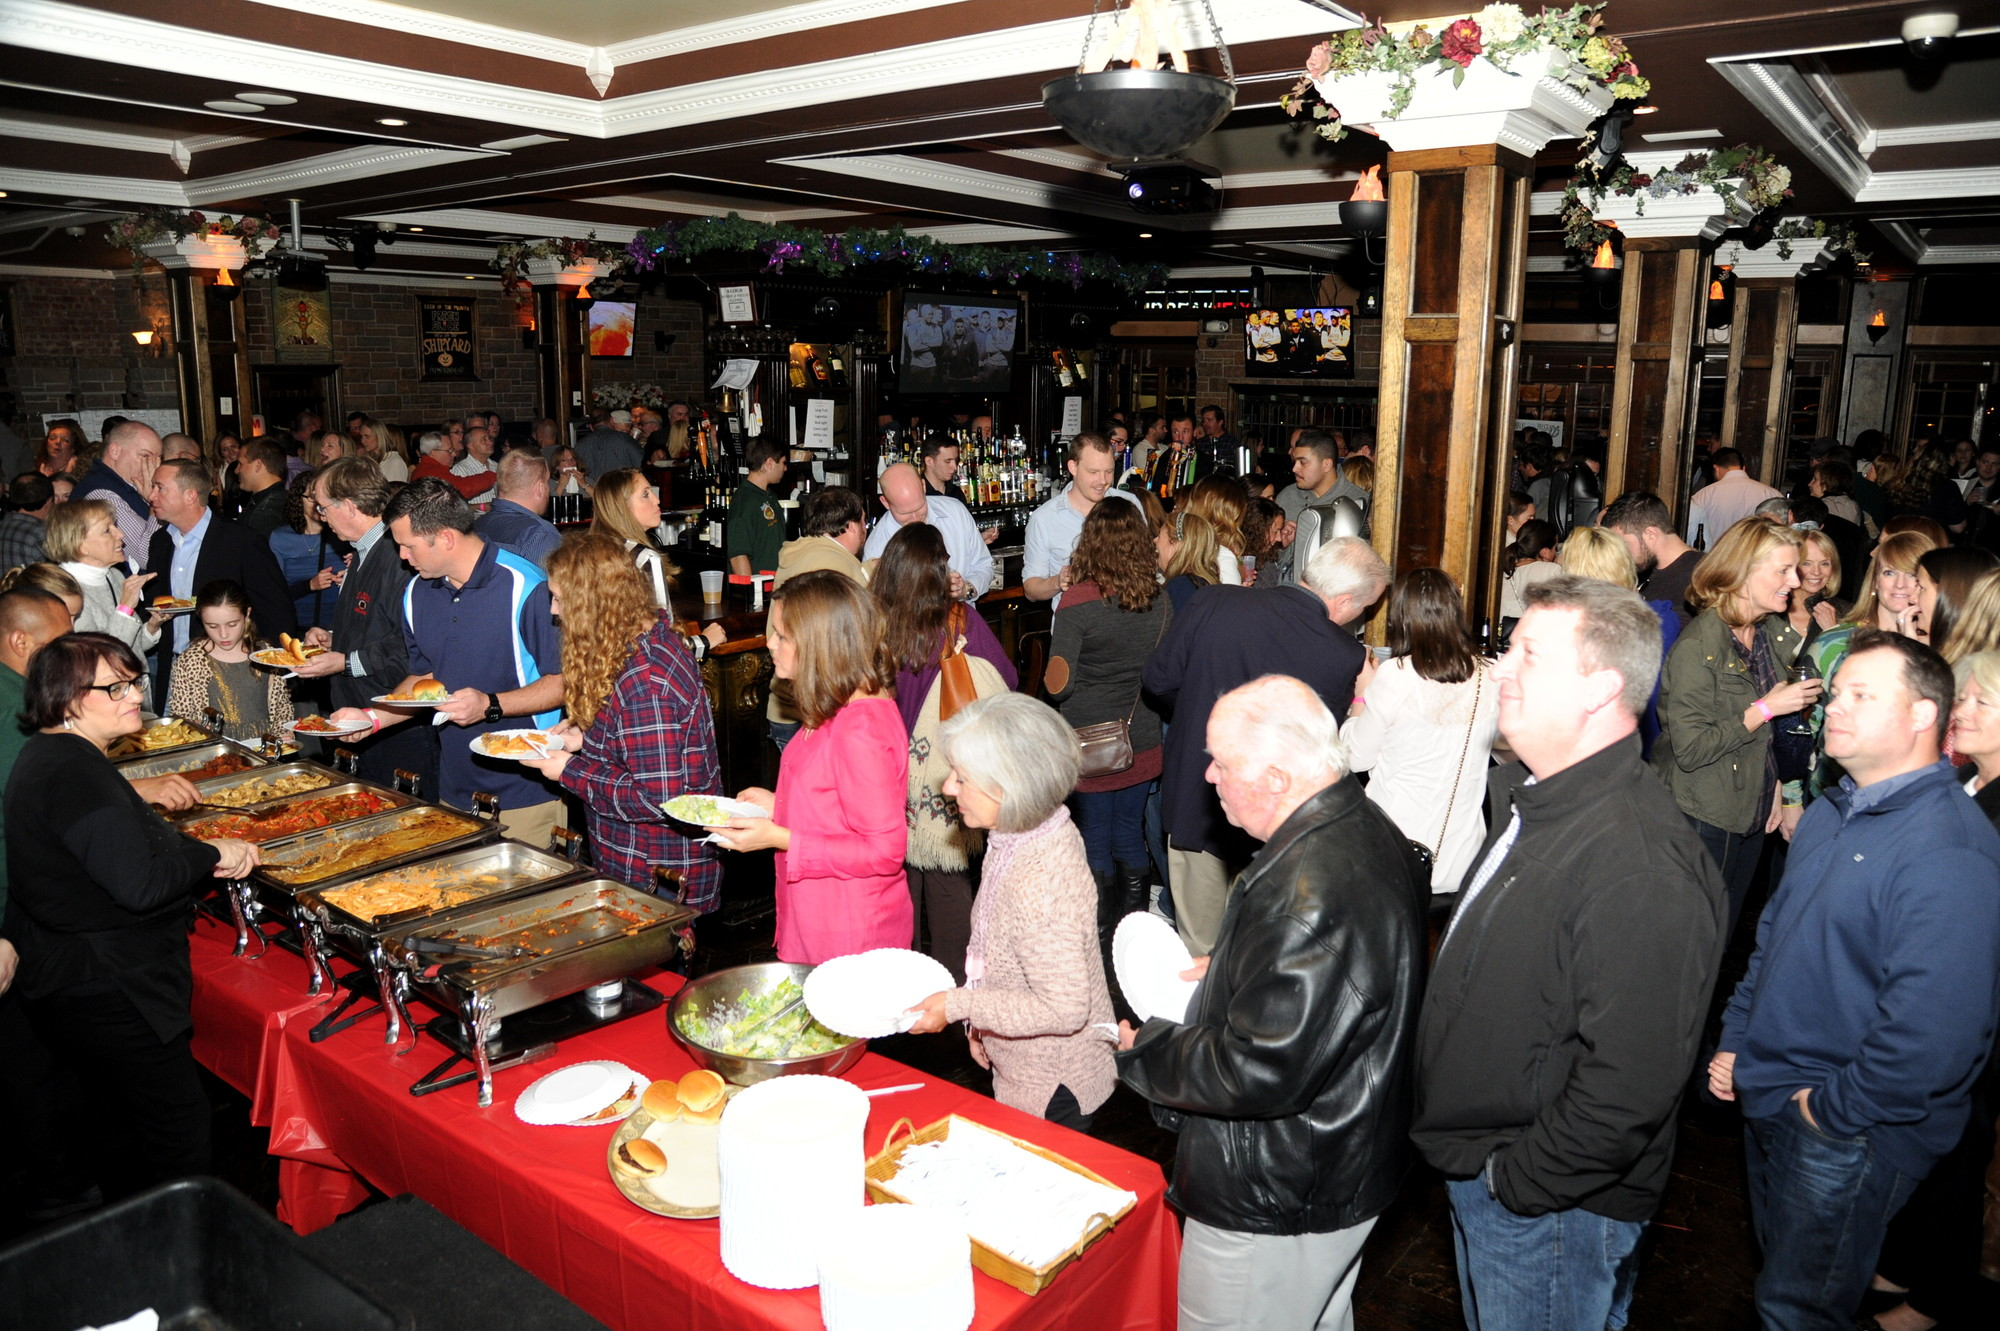 Dozens of people showed up to the event, raising more than $35,000 for the Tommy Brull Foundation.